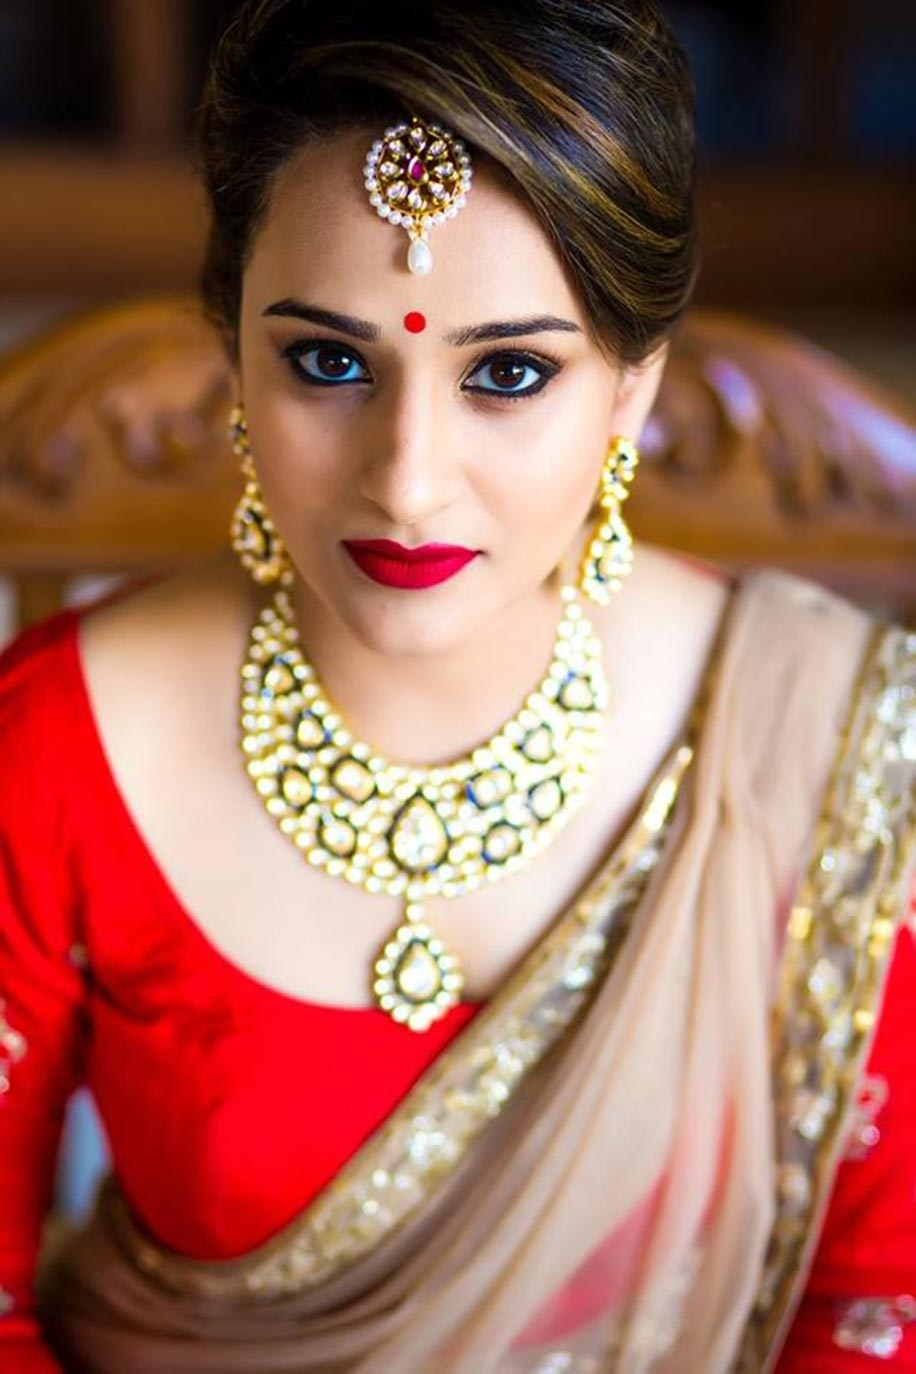 Top 10 Makeup Looks For Your Wedding Reception | Bridal Beauty for Wedding Makeup Gallery